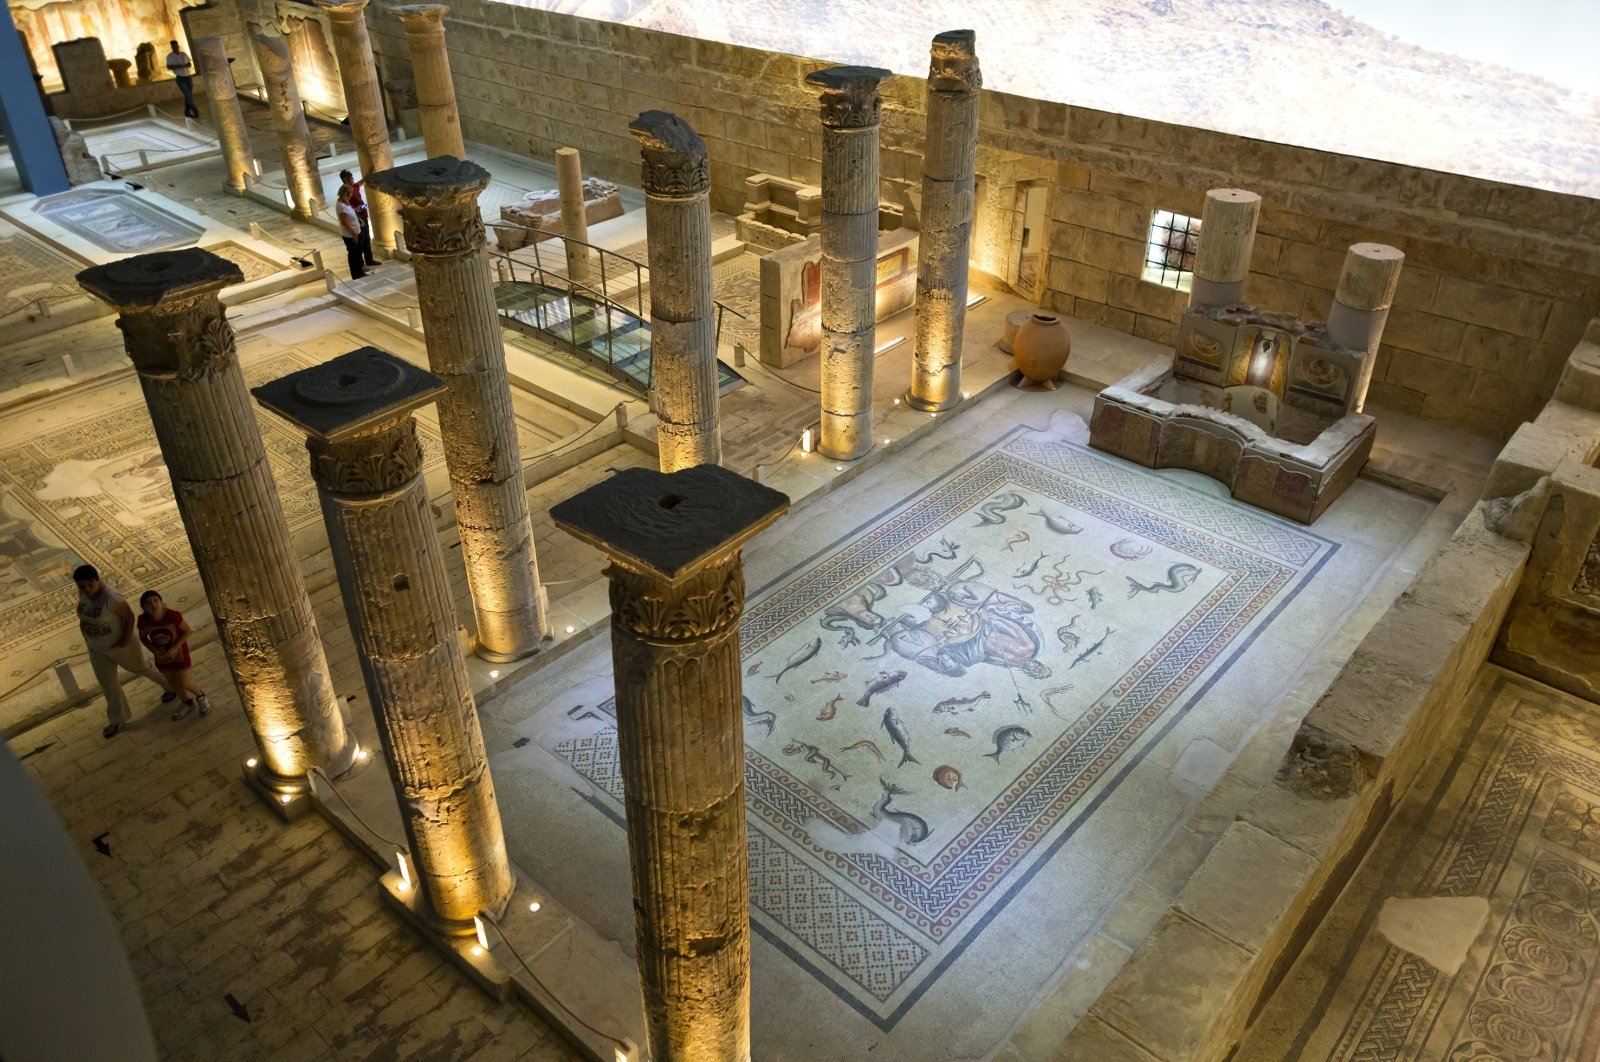 Zeugma Mosaic Museum in Gaziantep can be visited on the virtual museum platform launched by the Culture and Tourism Ministry. (Shutterstock Photo)